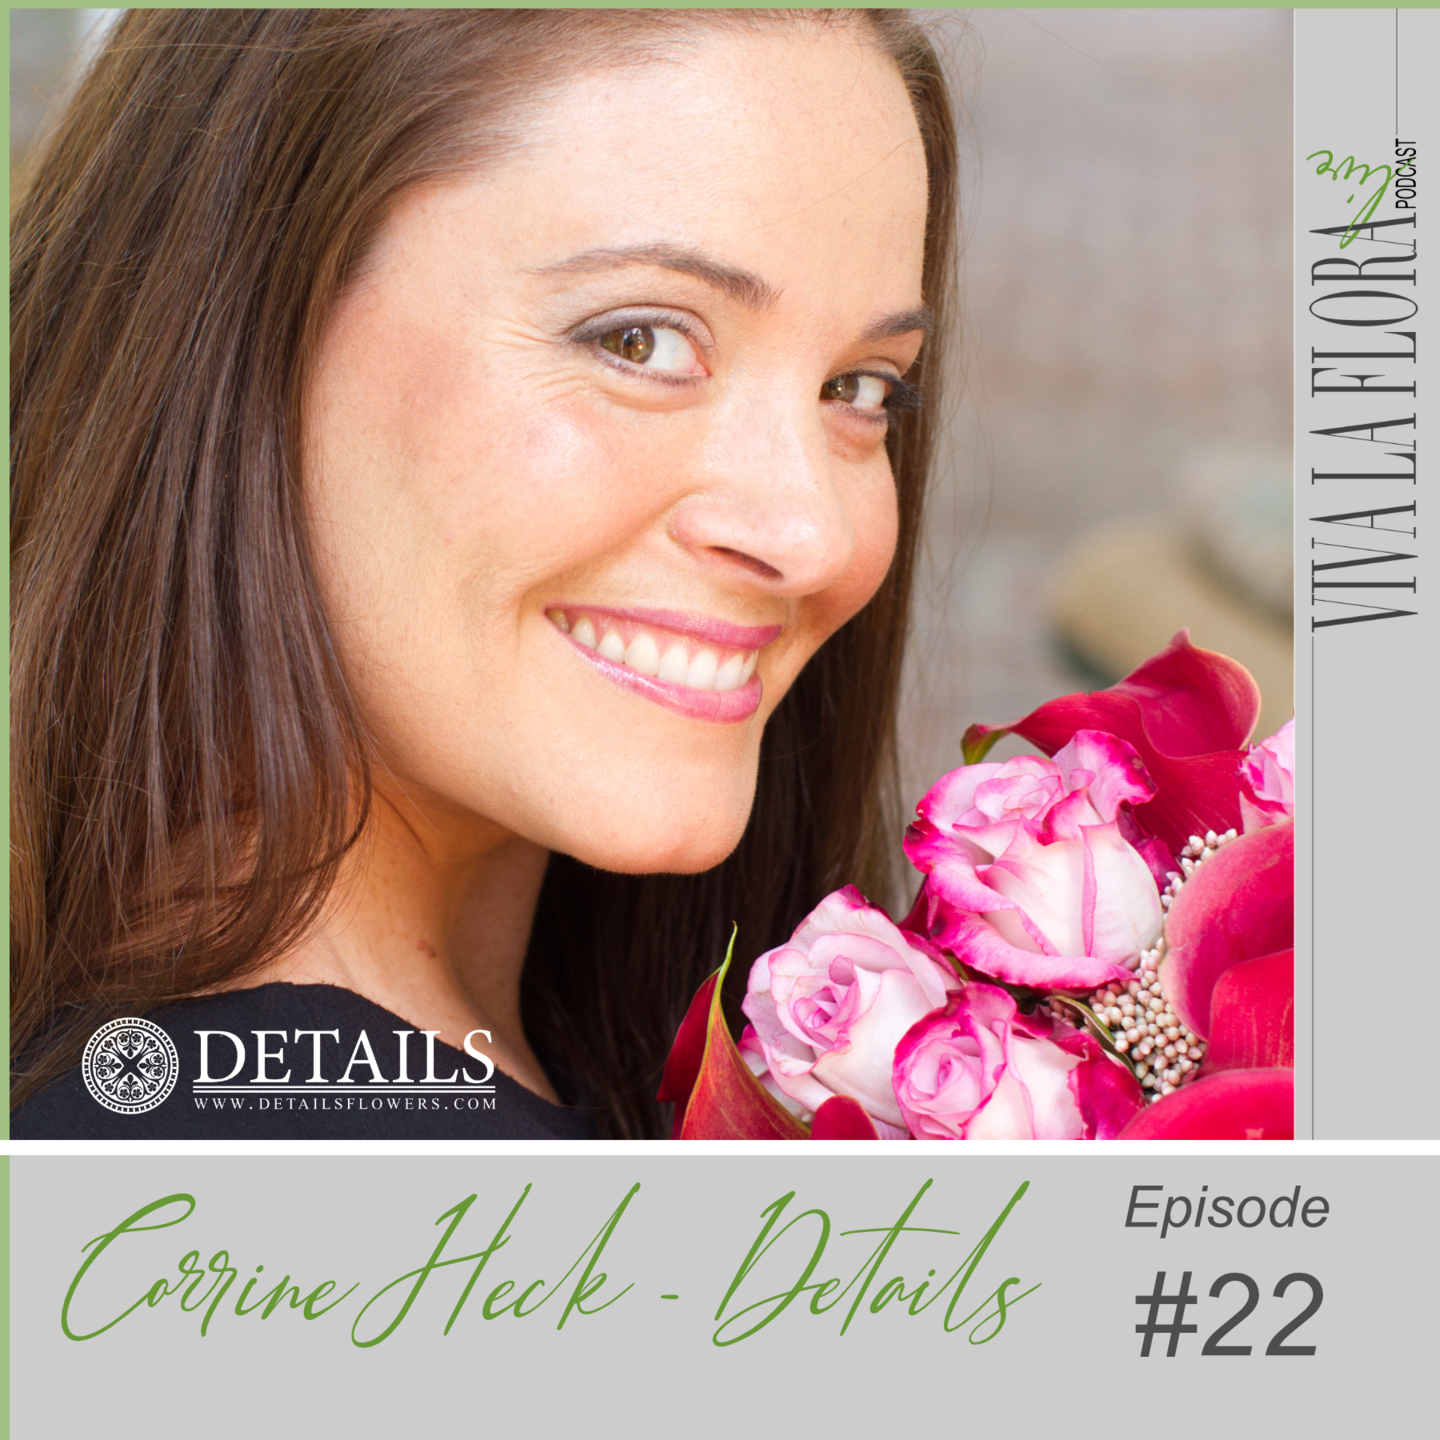 Viva La flora live podcast episode cover with Corrine Hack from details flower software